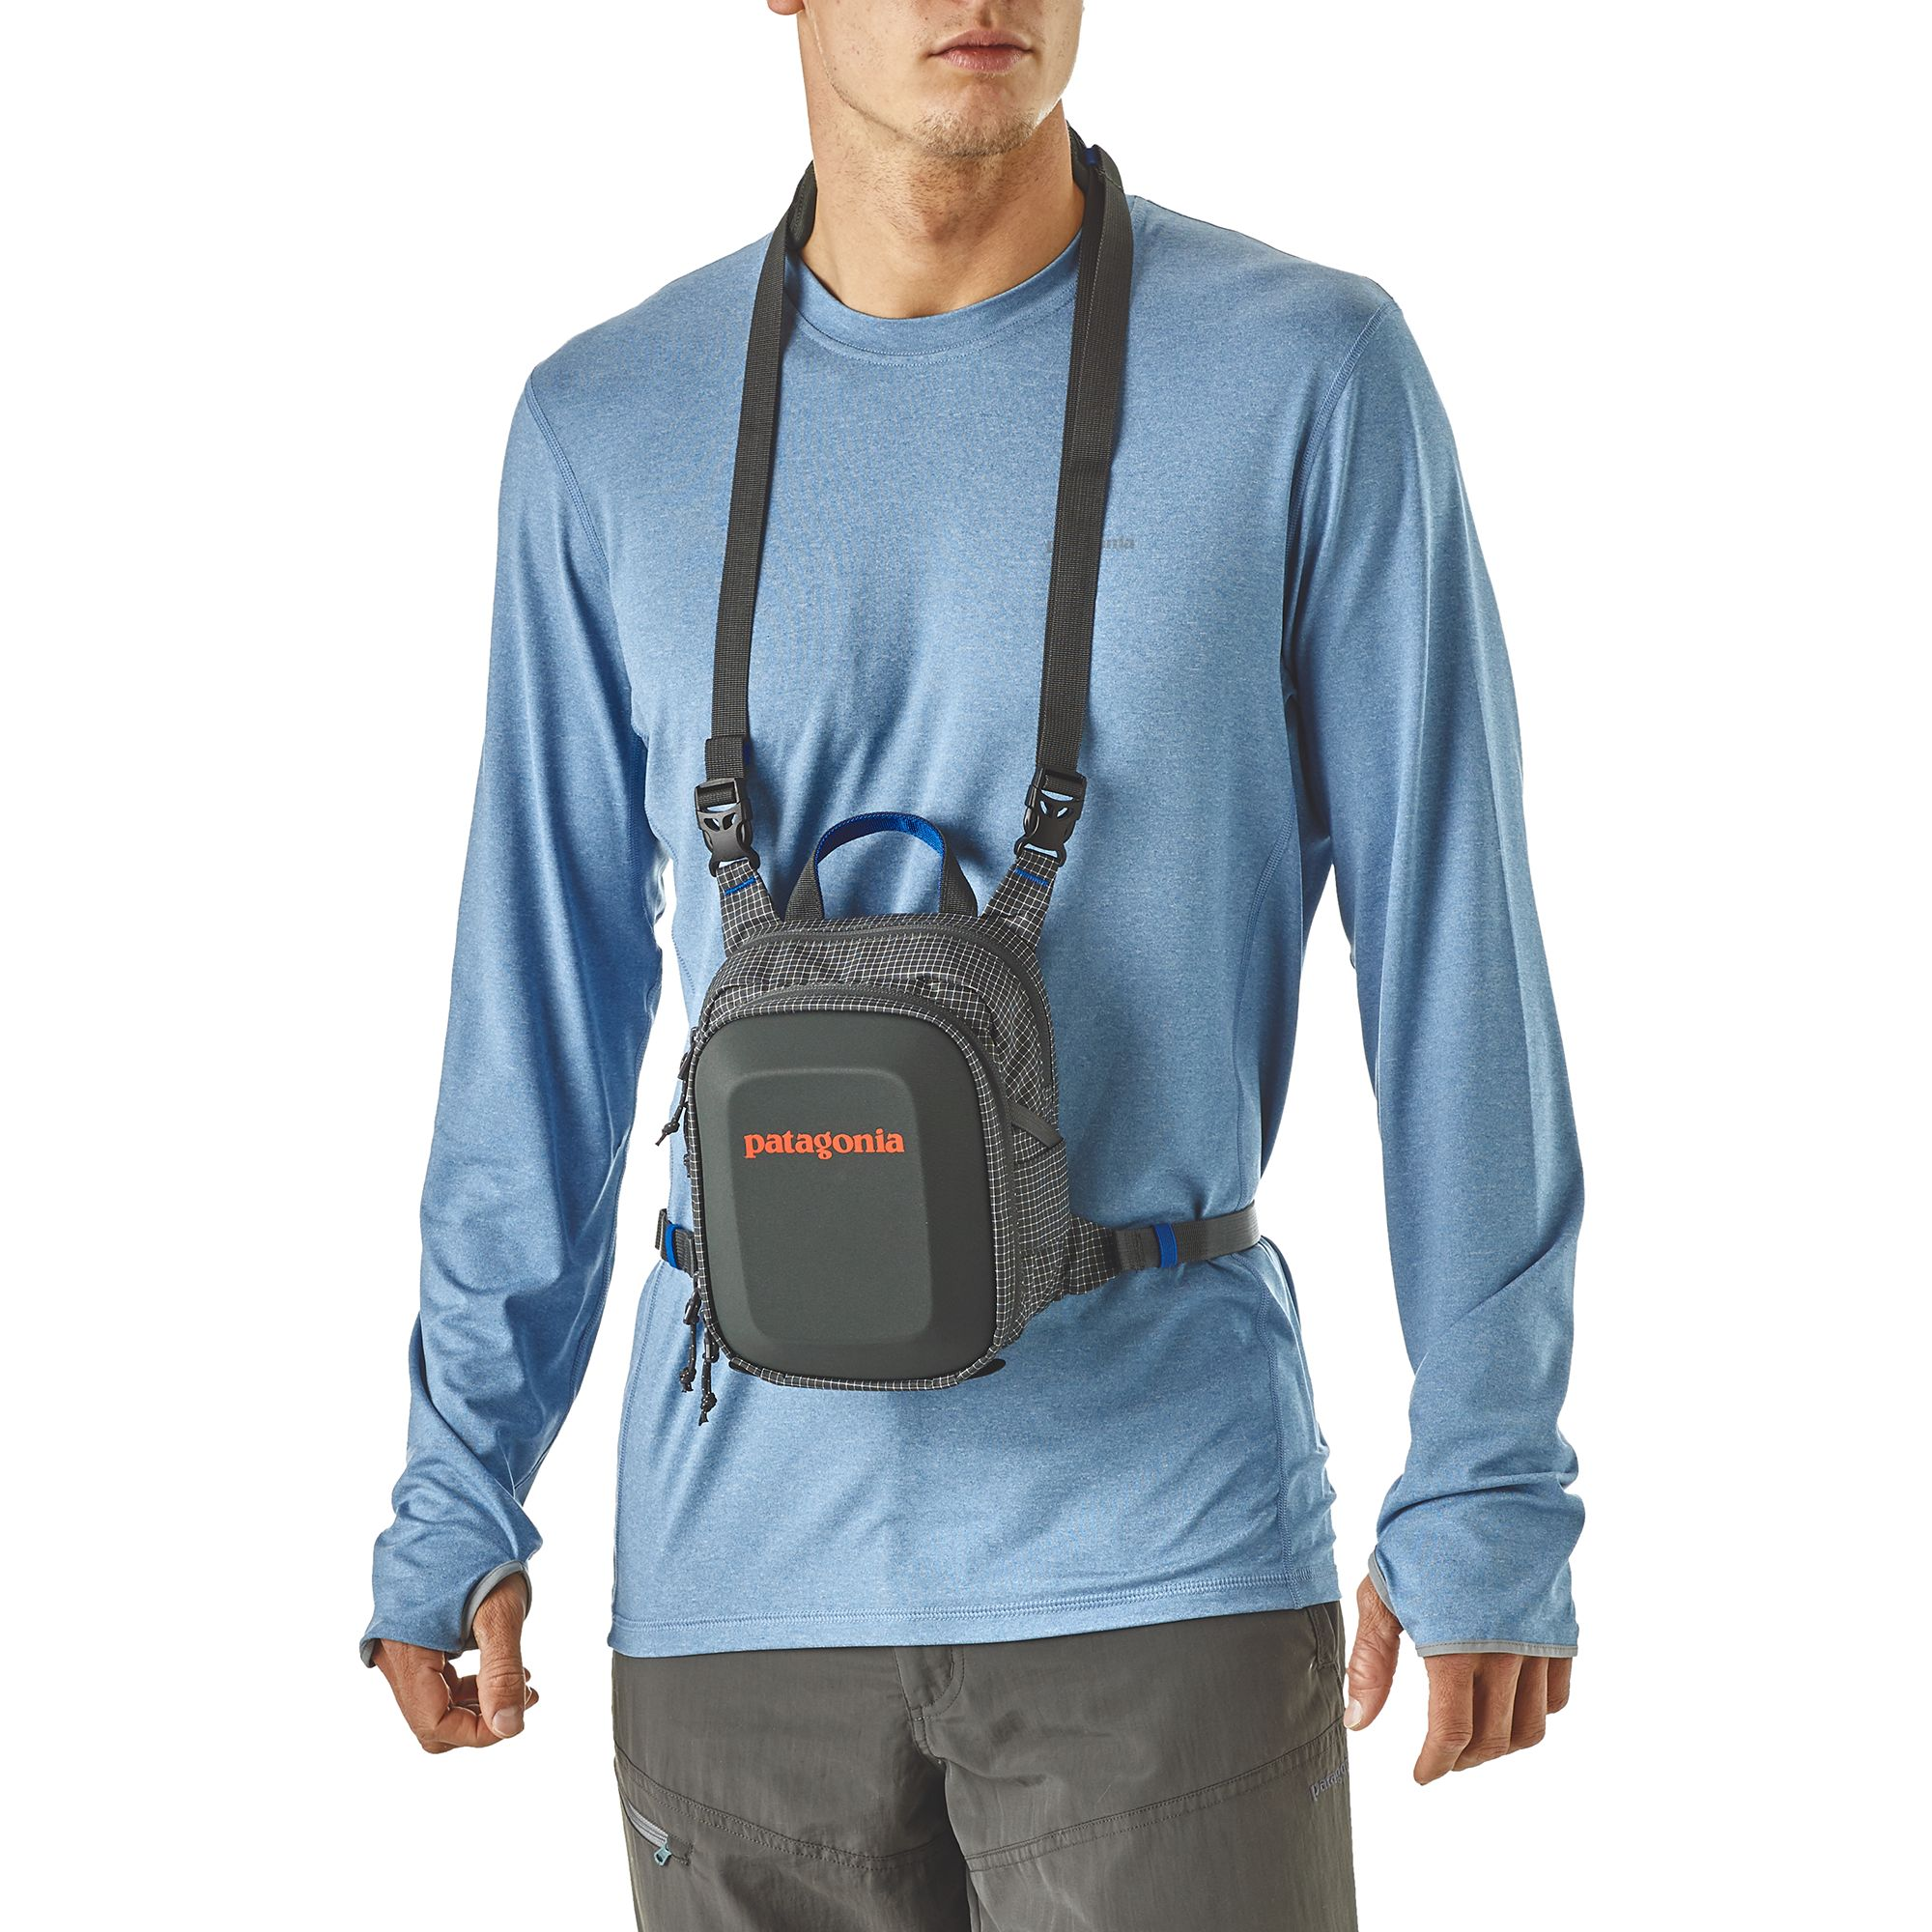 Stealth Chest Pack 4L Patagonia - Ready to fish